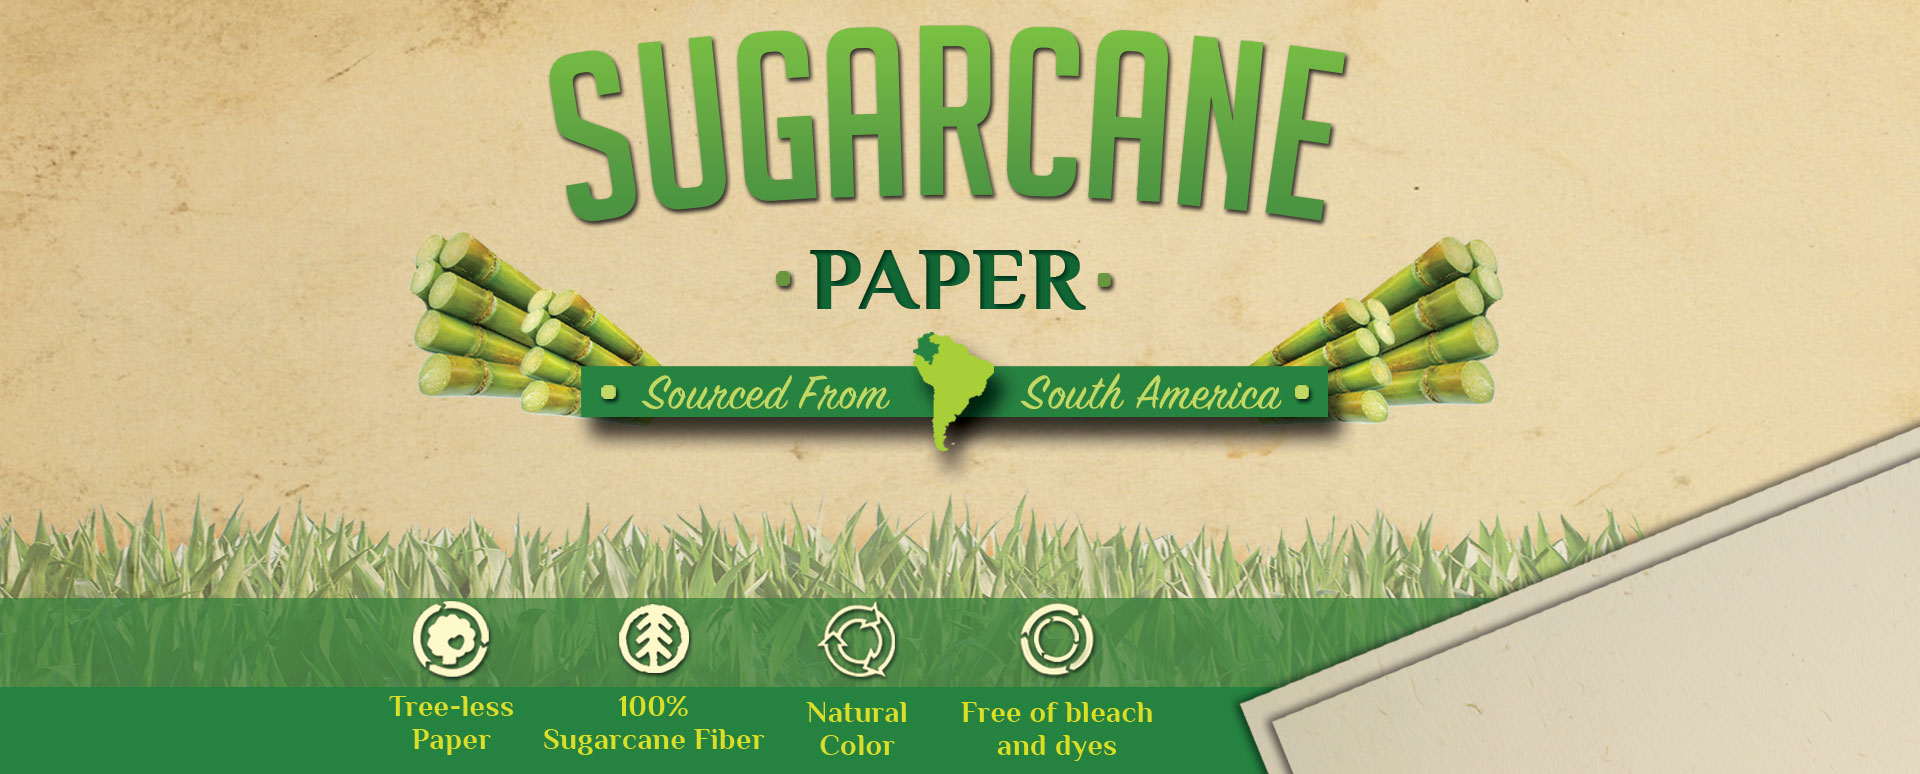 sugar cane paper proposal We will help save our planet paper water bottle - the first of its kind in the world, represents a new, innovative, and truly eco-friendly way of thinking.